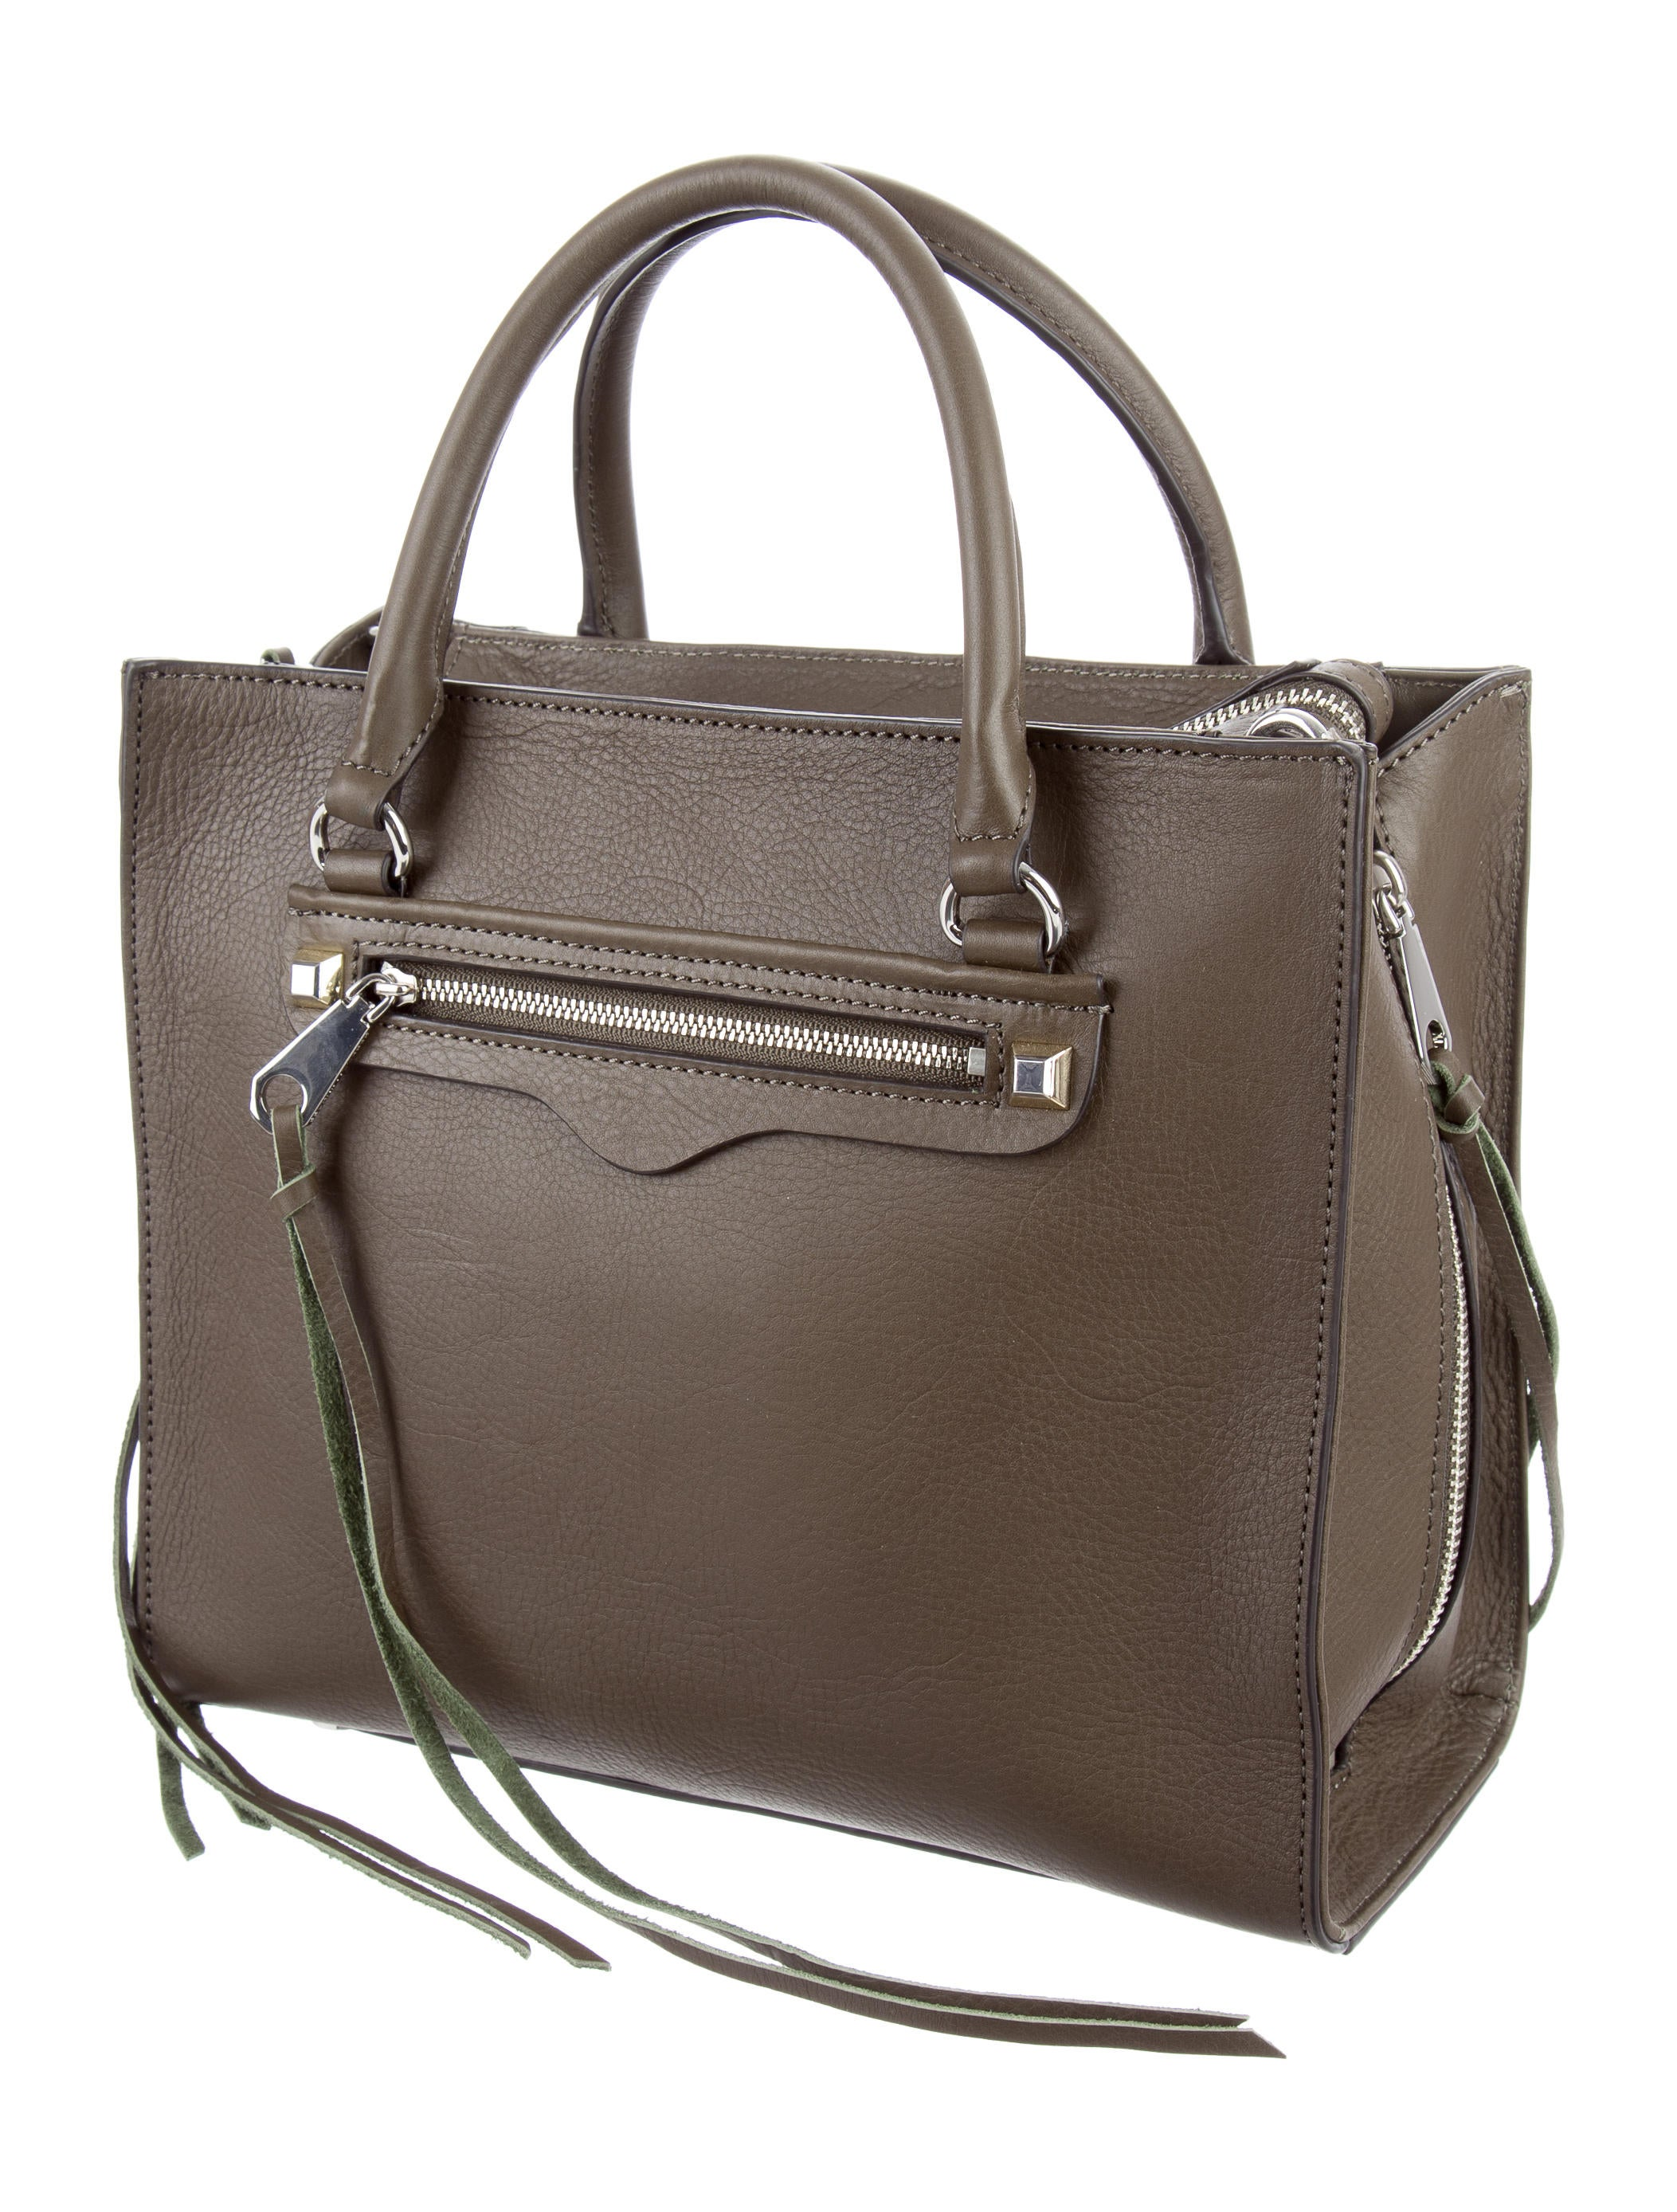 Find great deals on eBay for structured leather handbag. Shop with confidence.